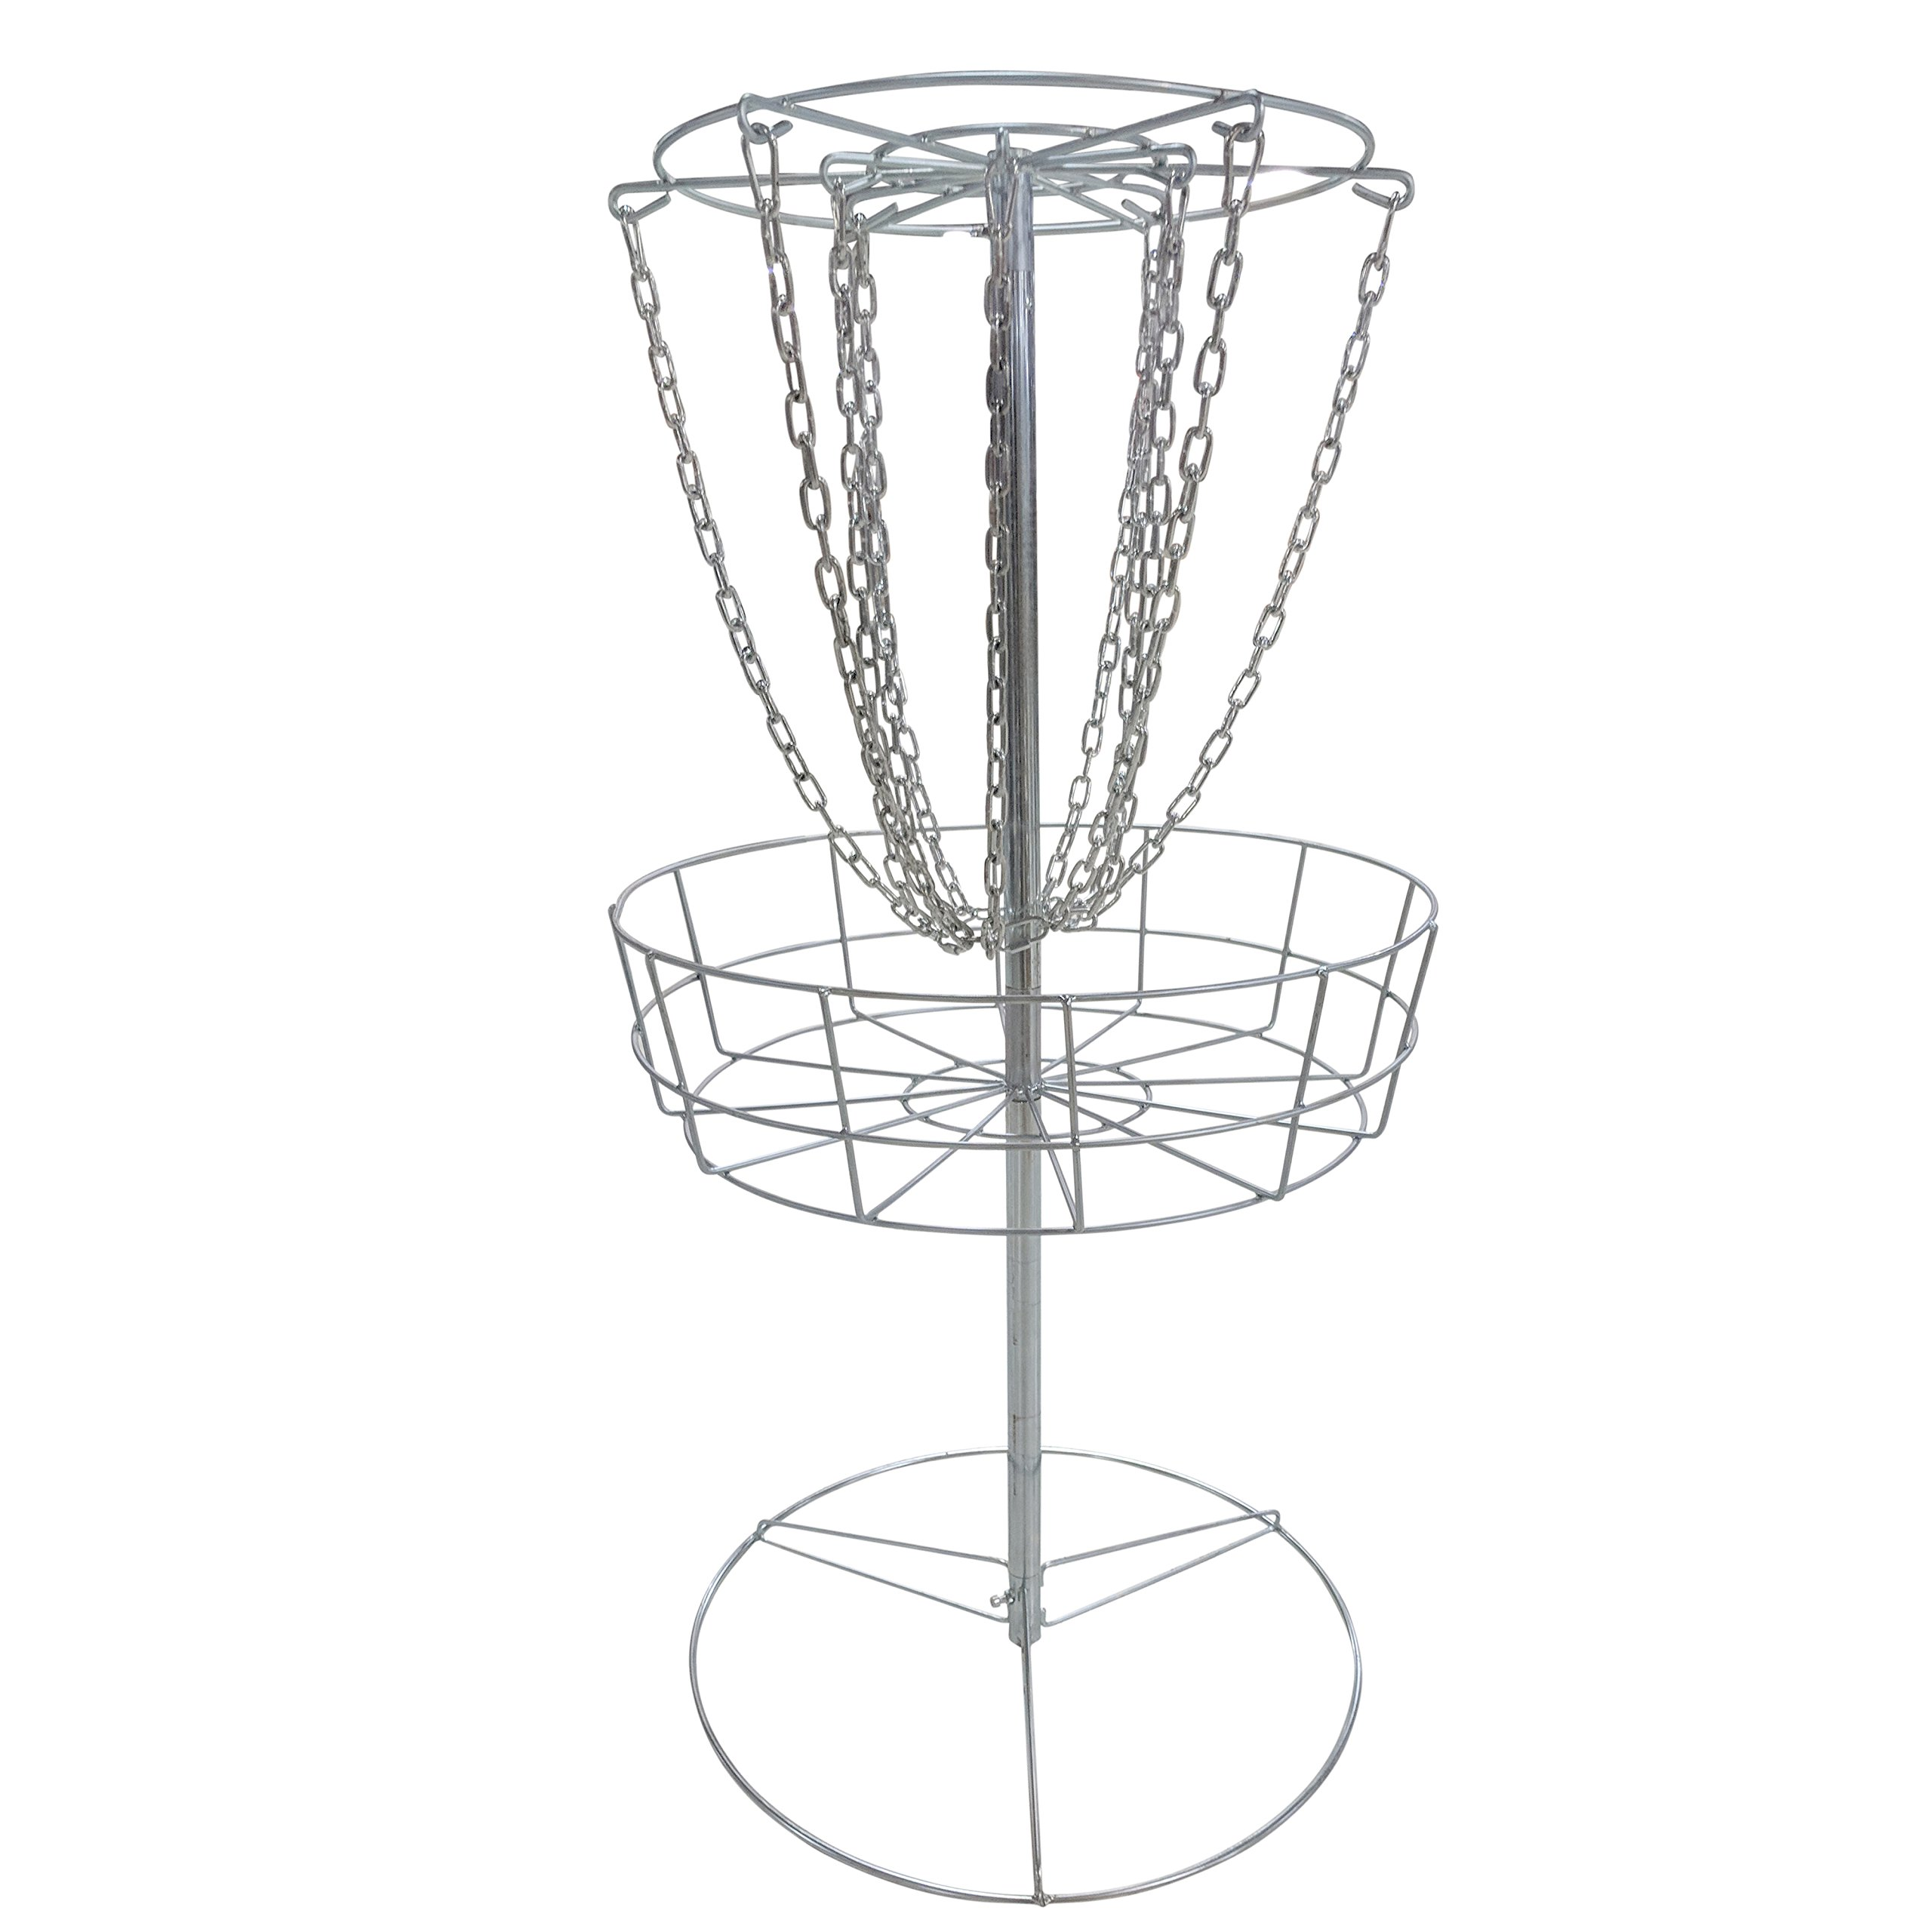 Titan Disc Golf Basket Double Chains Portable Practice Target Steel Frisbee Hole | V2 by Titan Great Outdoors